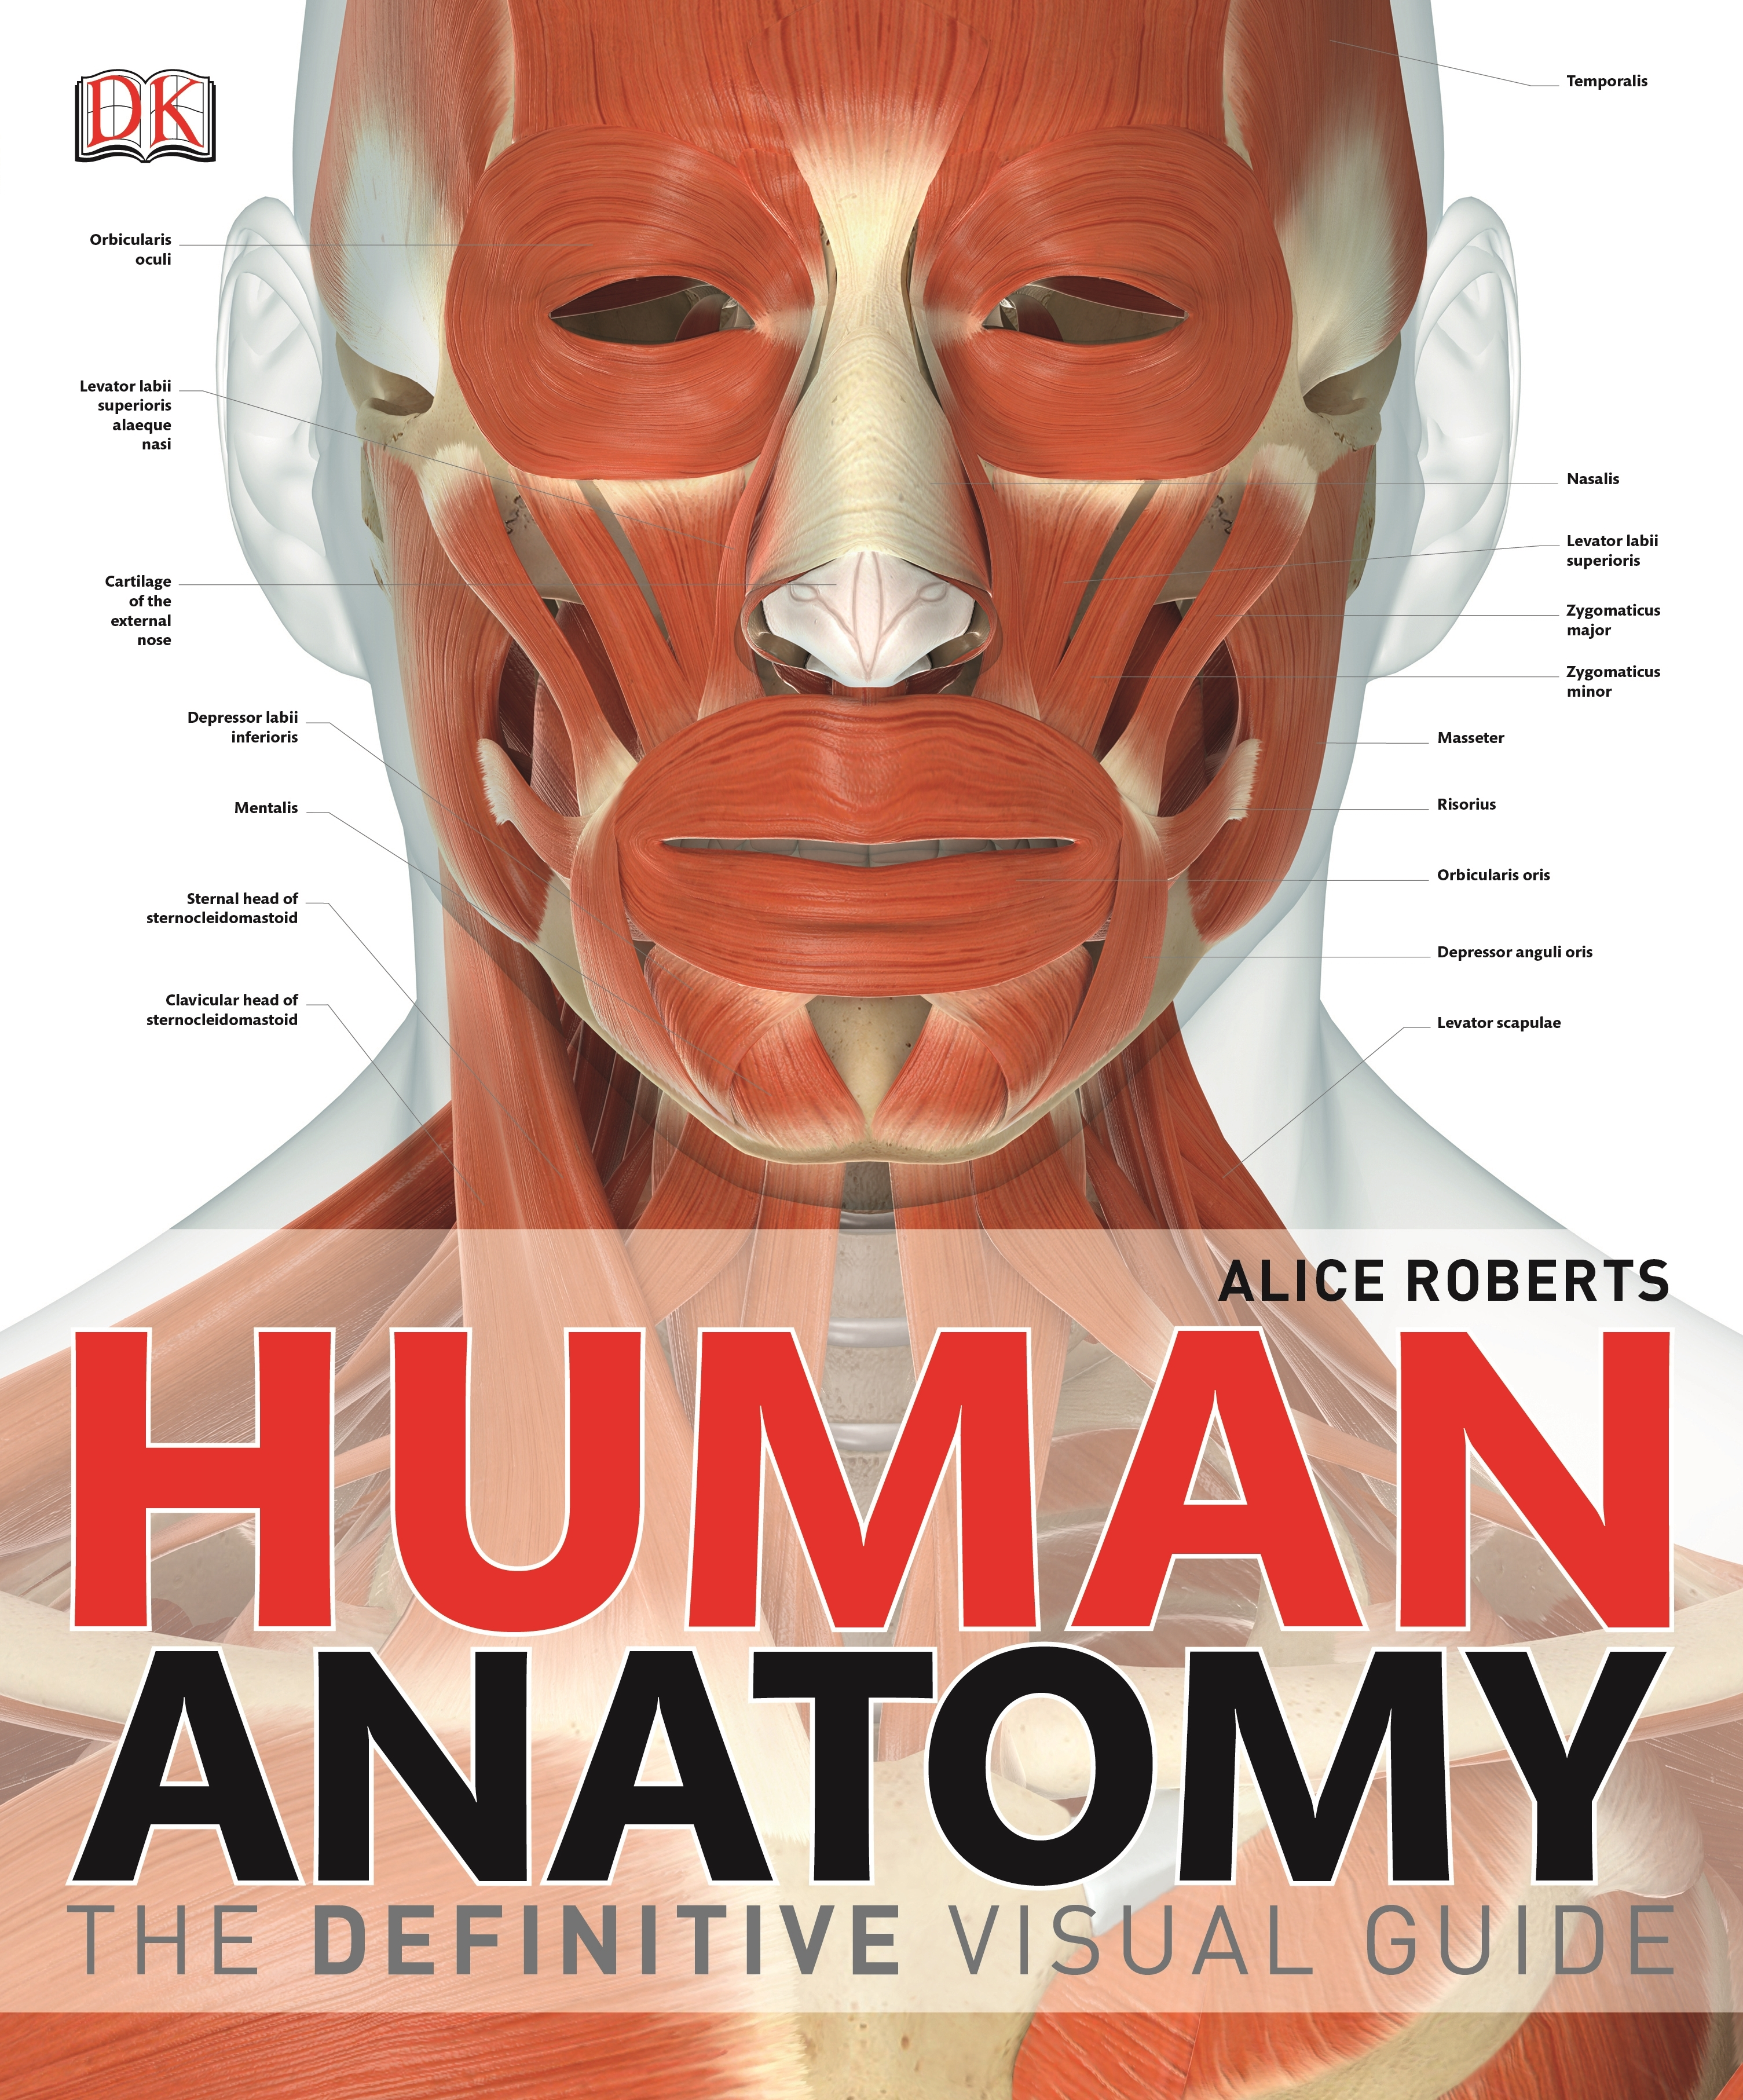 Human Anatomy The Definitive Visual Guide By Alice Roberts